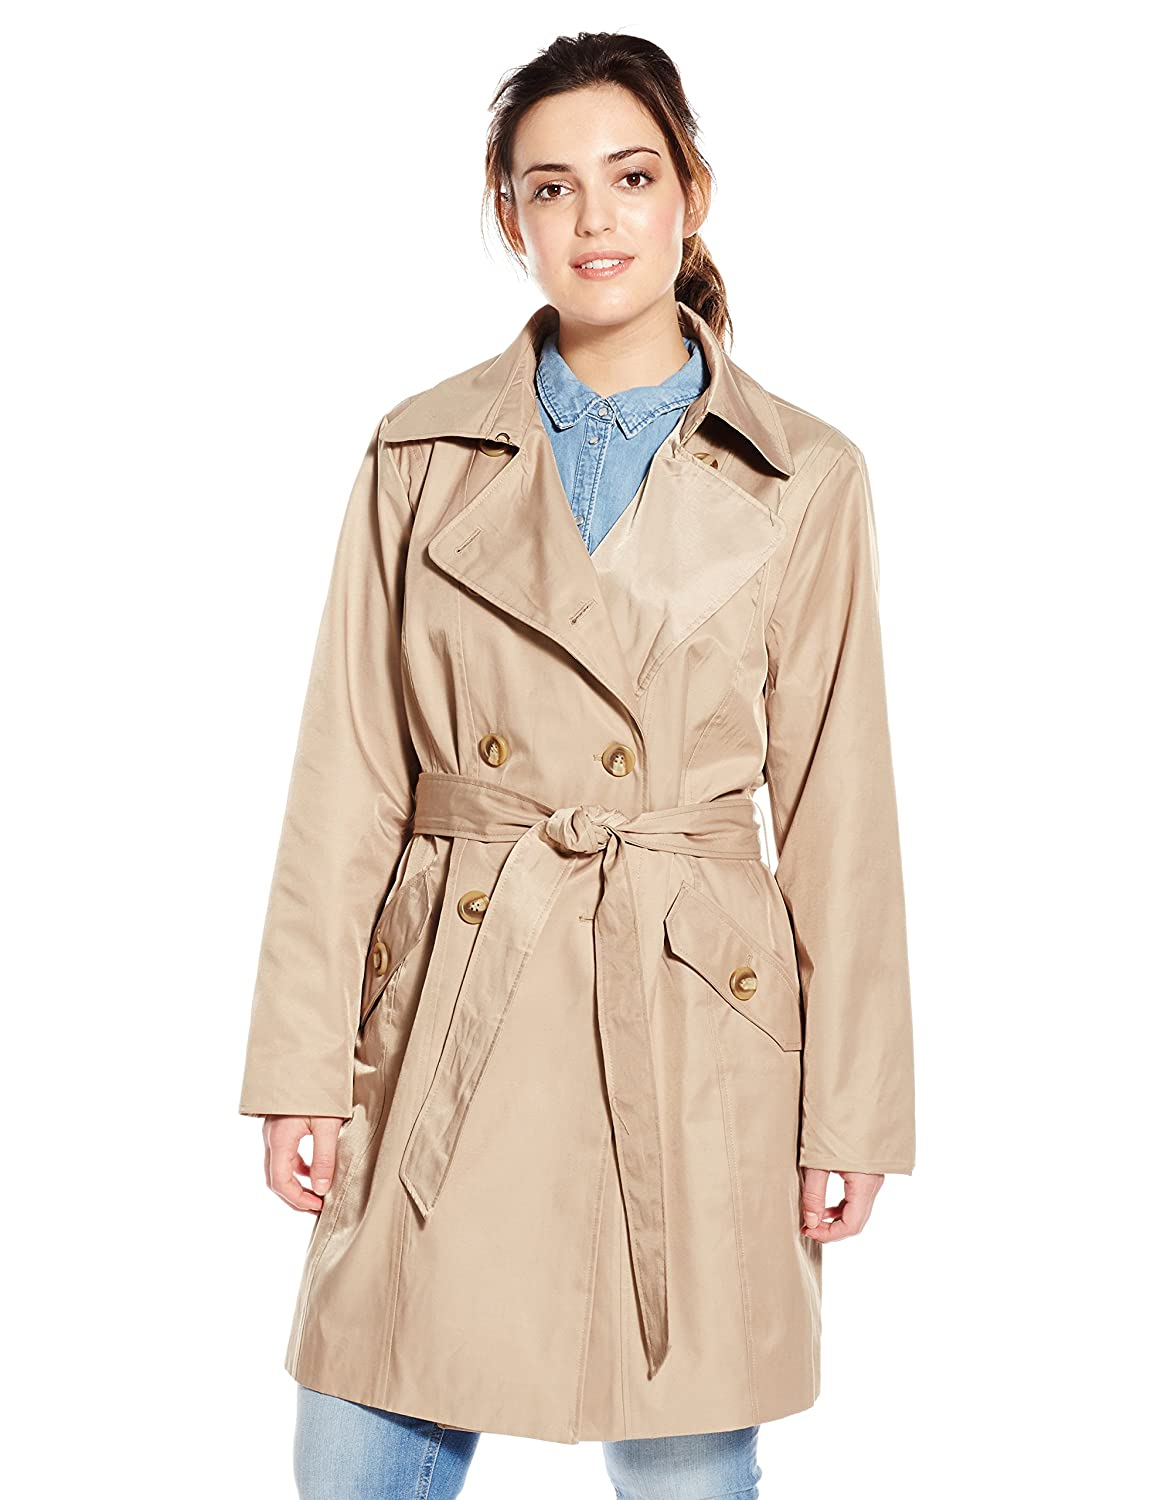 Anne Klein Women's Plus-Size Classic Double-breasted Trench Coat 3761845r93